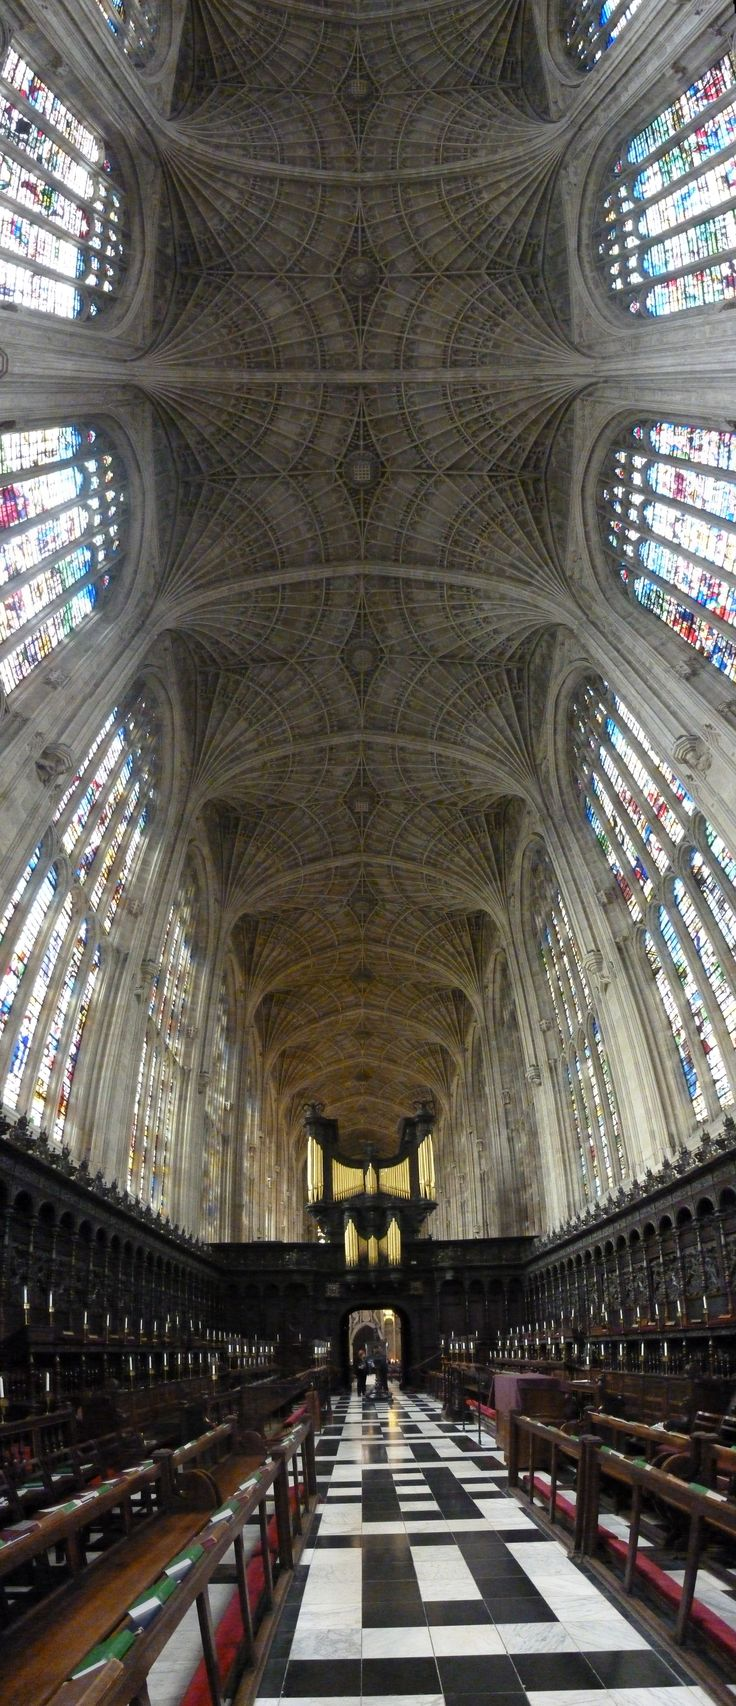 The world's largest fan-vaulted ceiling. Kings College Chapel, Cambridge. Built 1512 - 1515.